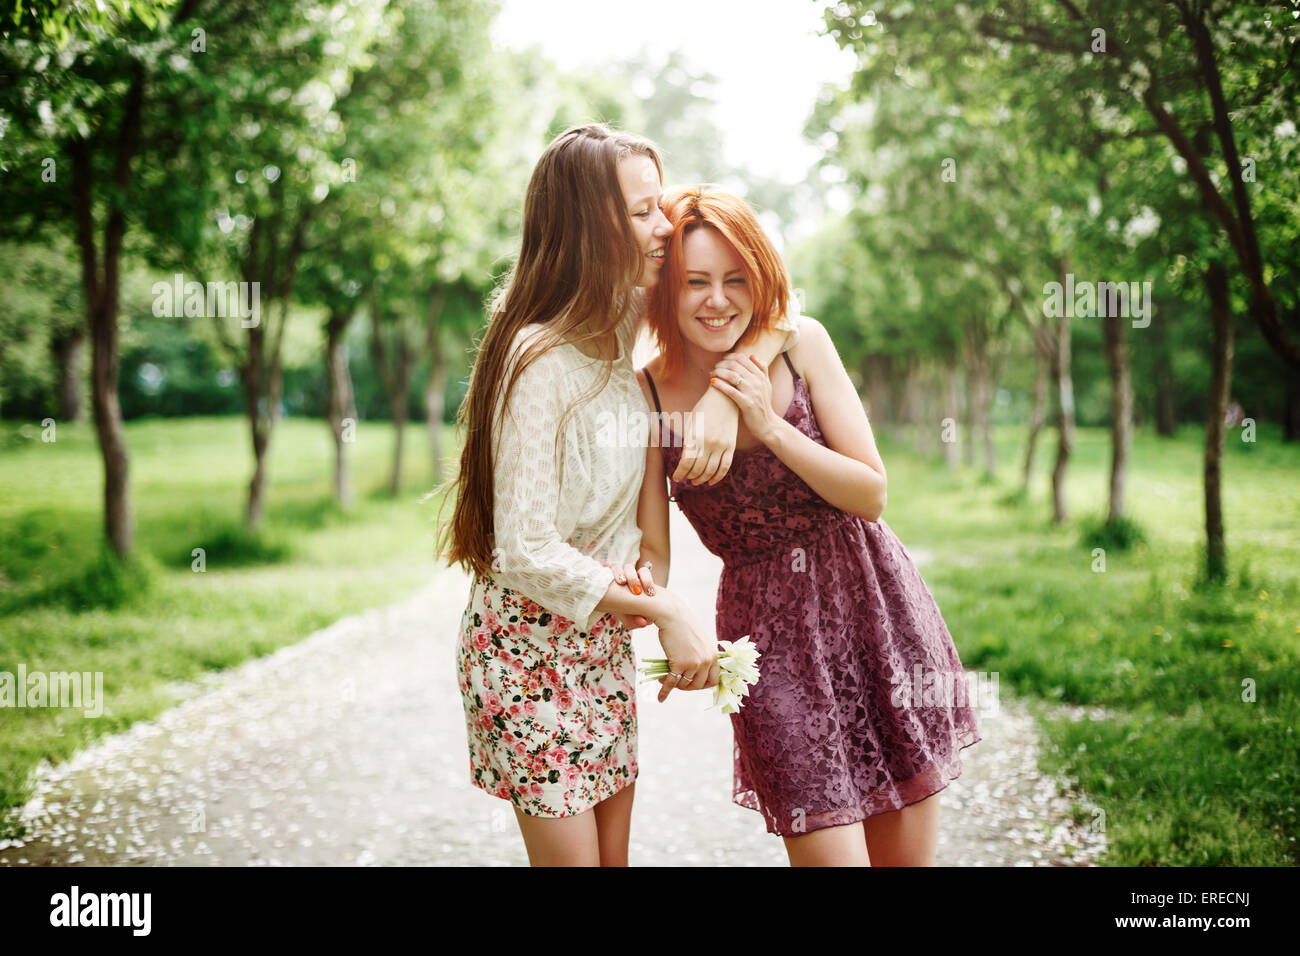 Two Young Happy Girls Having Fun in the Summer Park. Best Friends Laughing and Embracing. - Stock Image